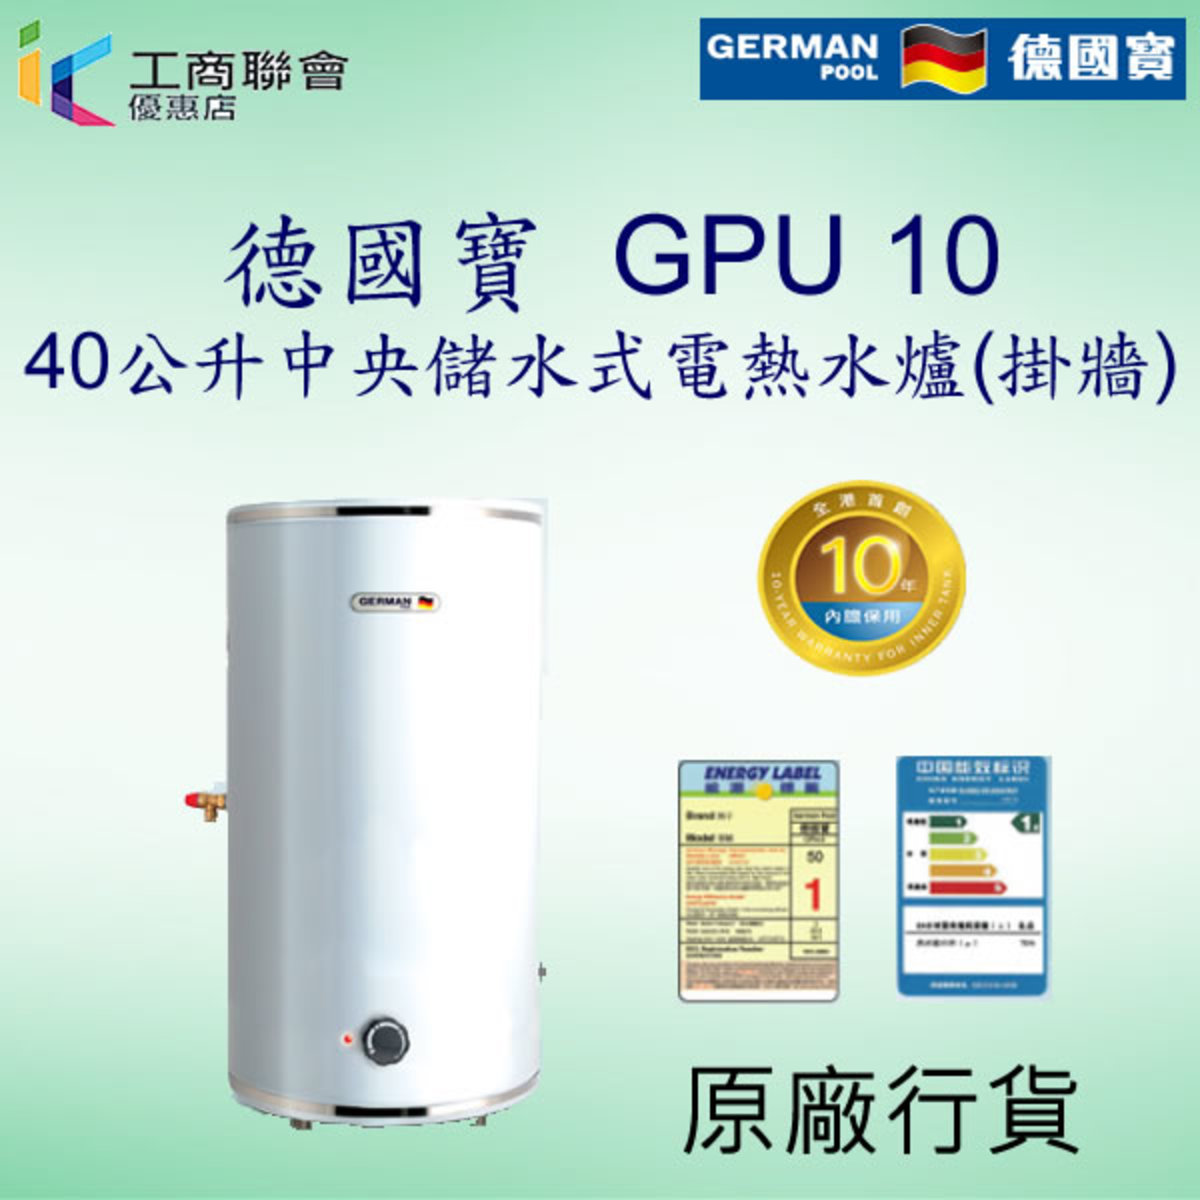 German Pool  GPU10 40 litres 3KW /4KW central water storage electric water heater (hanging wall)